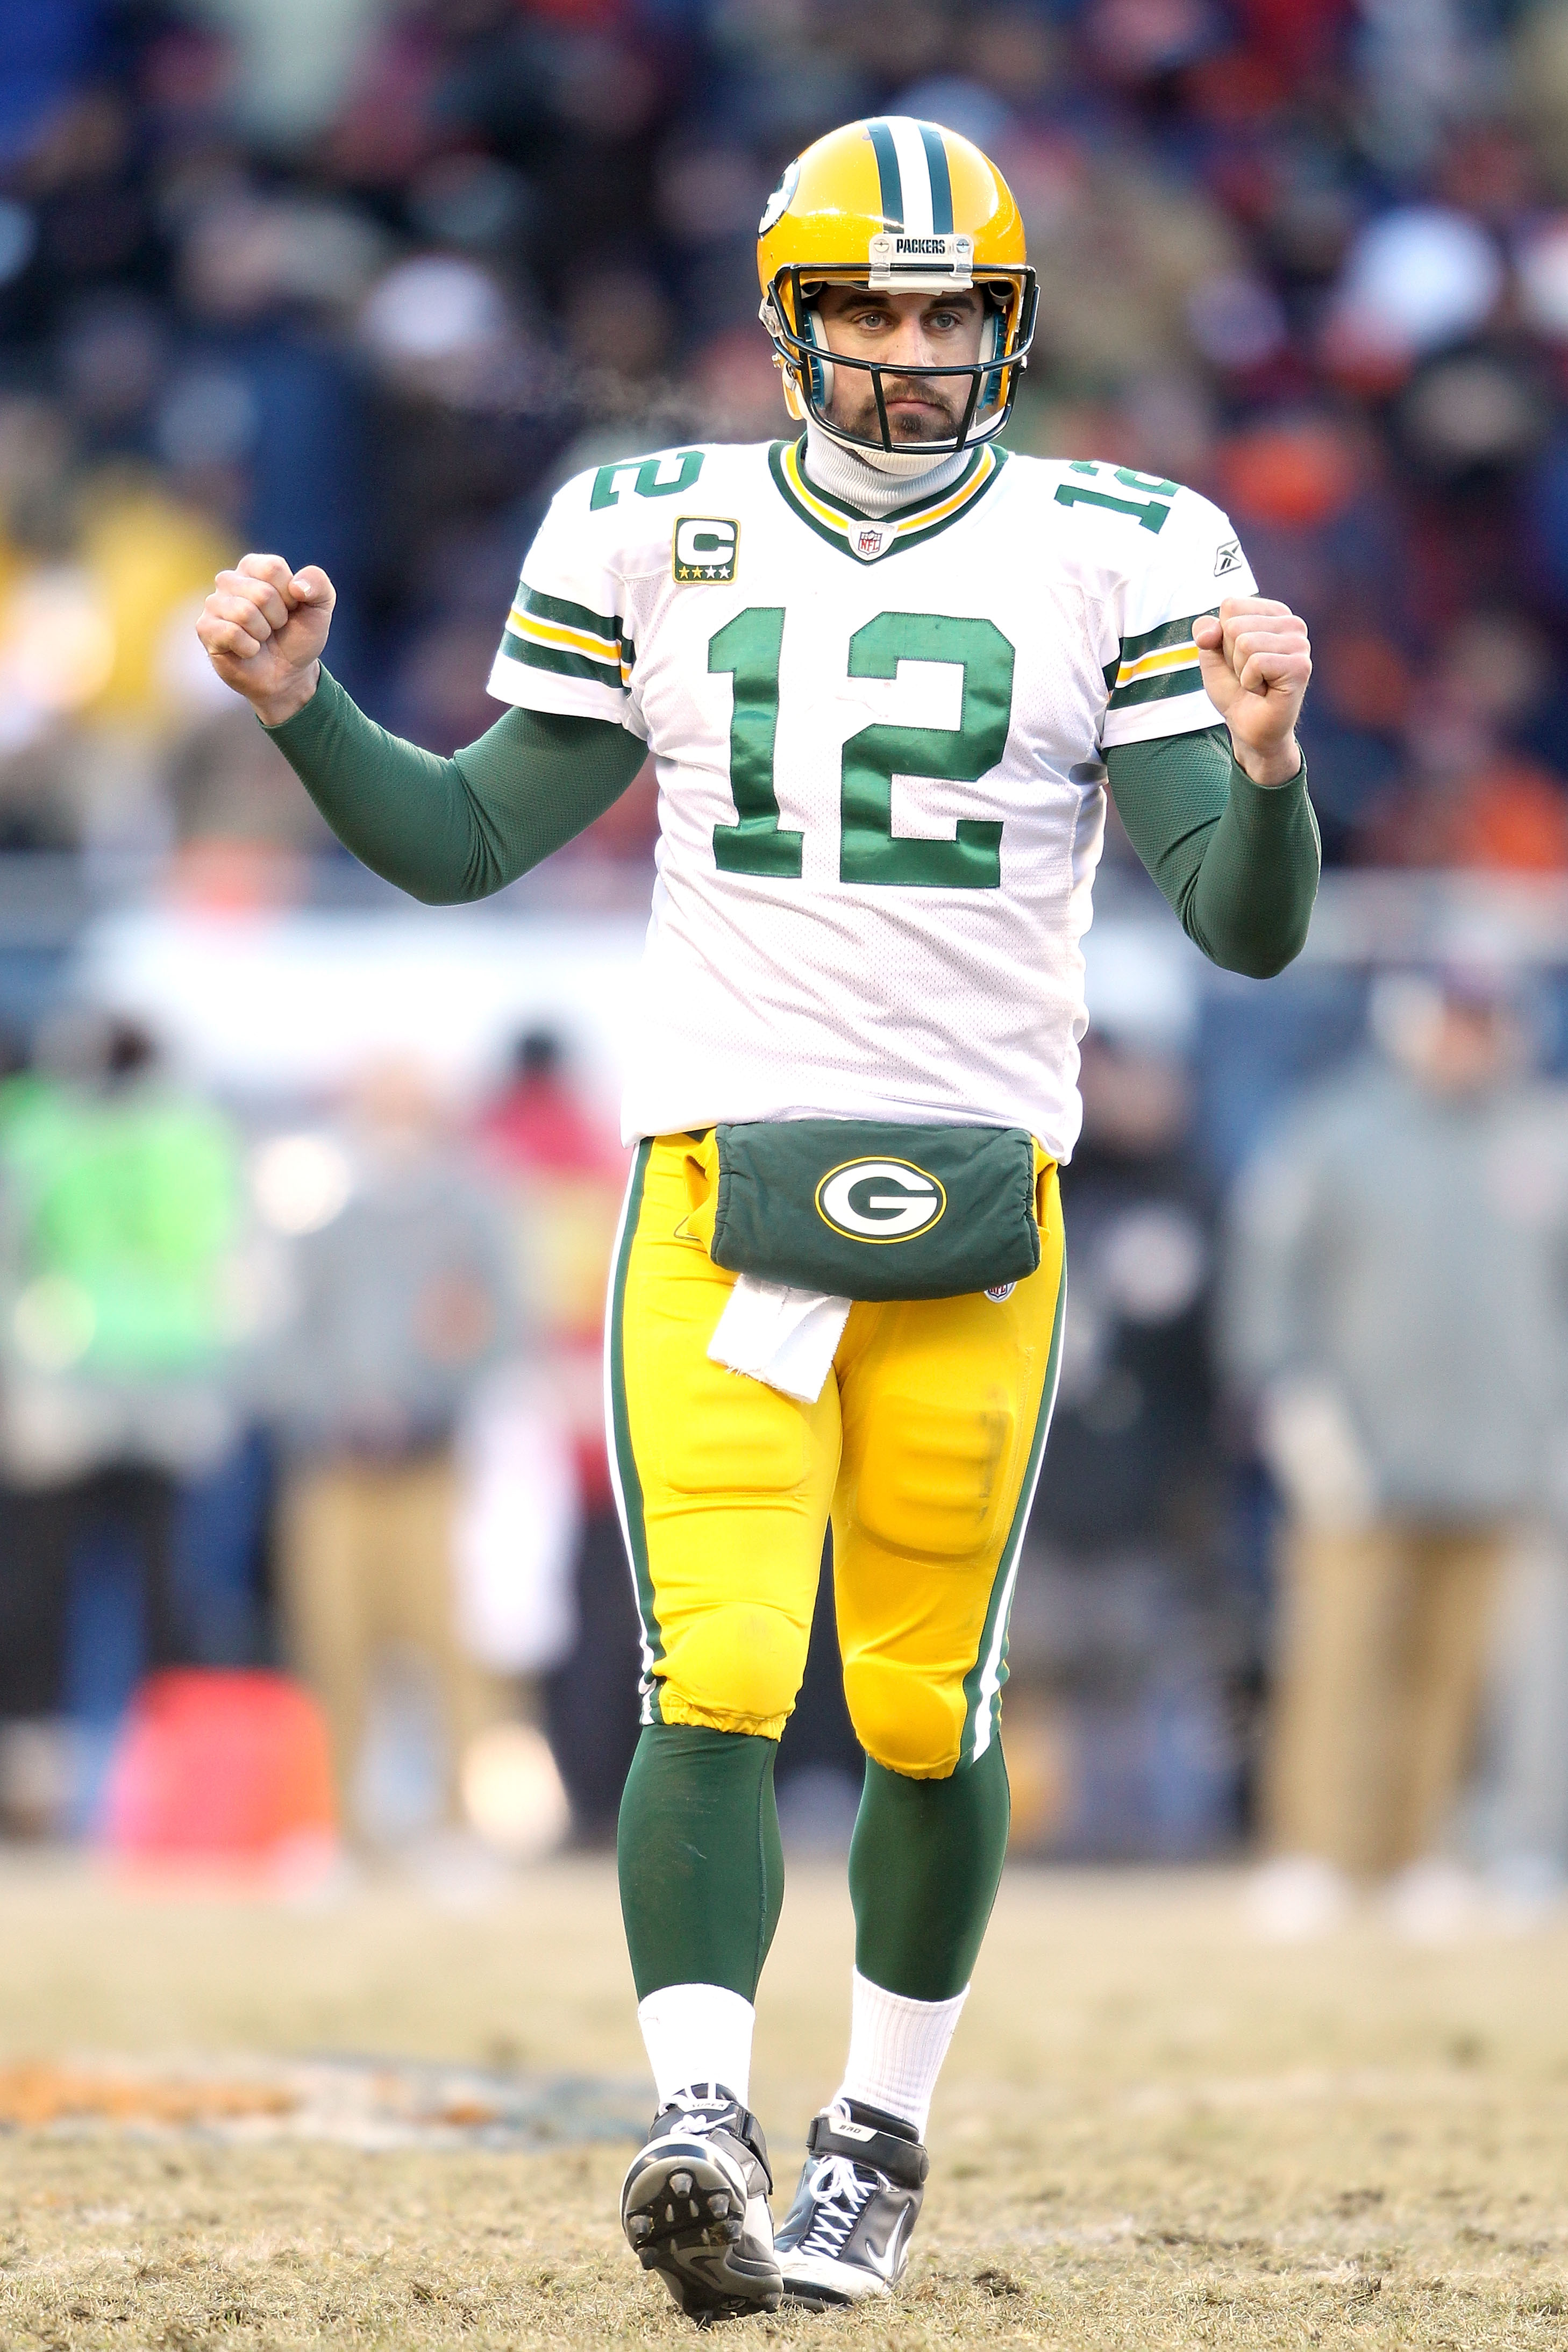 CHICAGO, IL - JANUARY 23:  Quarterback Aaron Rodgers #12 of the Green Bay Packers reacts in the third quarter against the Chicago Bears in the NFC Championship Game at Soldier Field on January 23, 2011 in Chicago, Illinois.  (Photo by Andy Lyons/Getty Ima